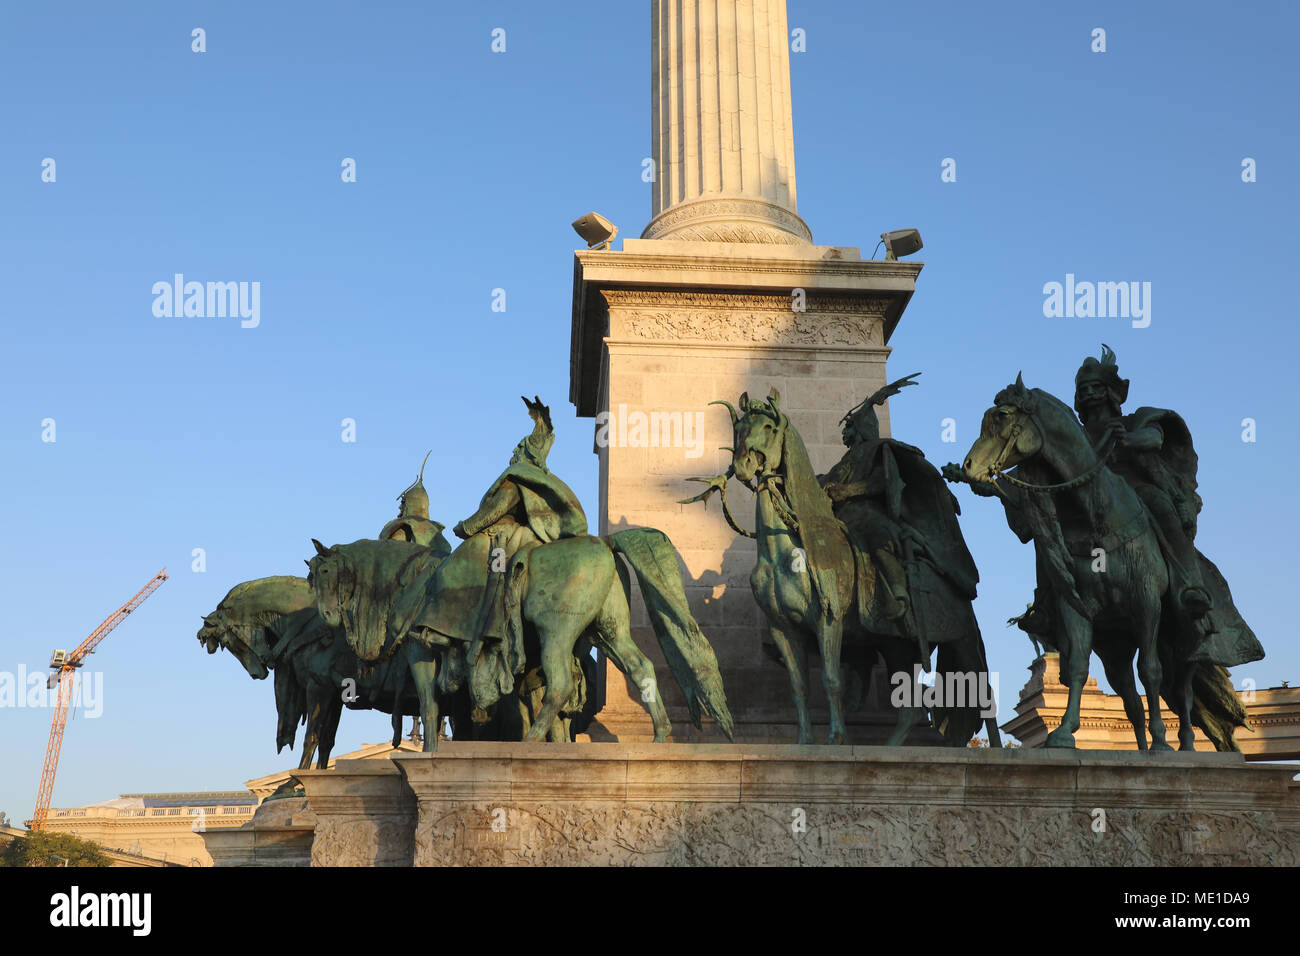 Heroes' Square Budapest Hungary Statues of Kinds and Royalty Stock Photo